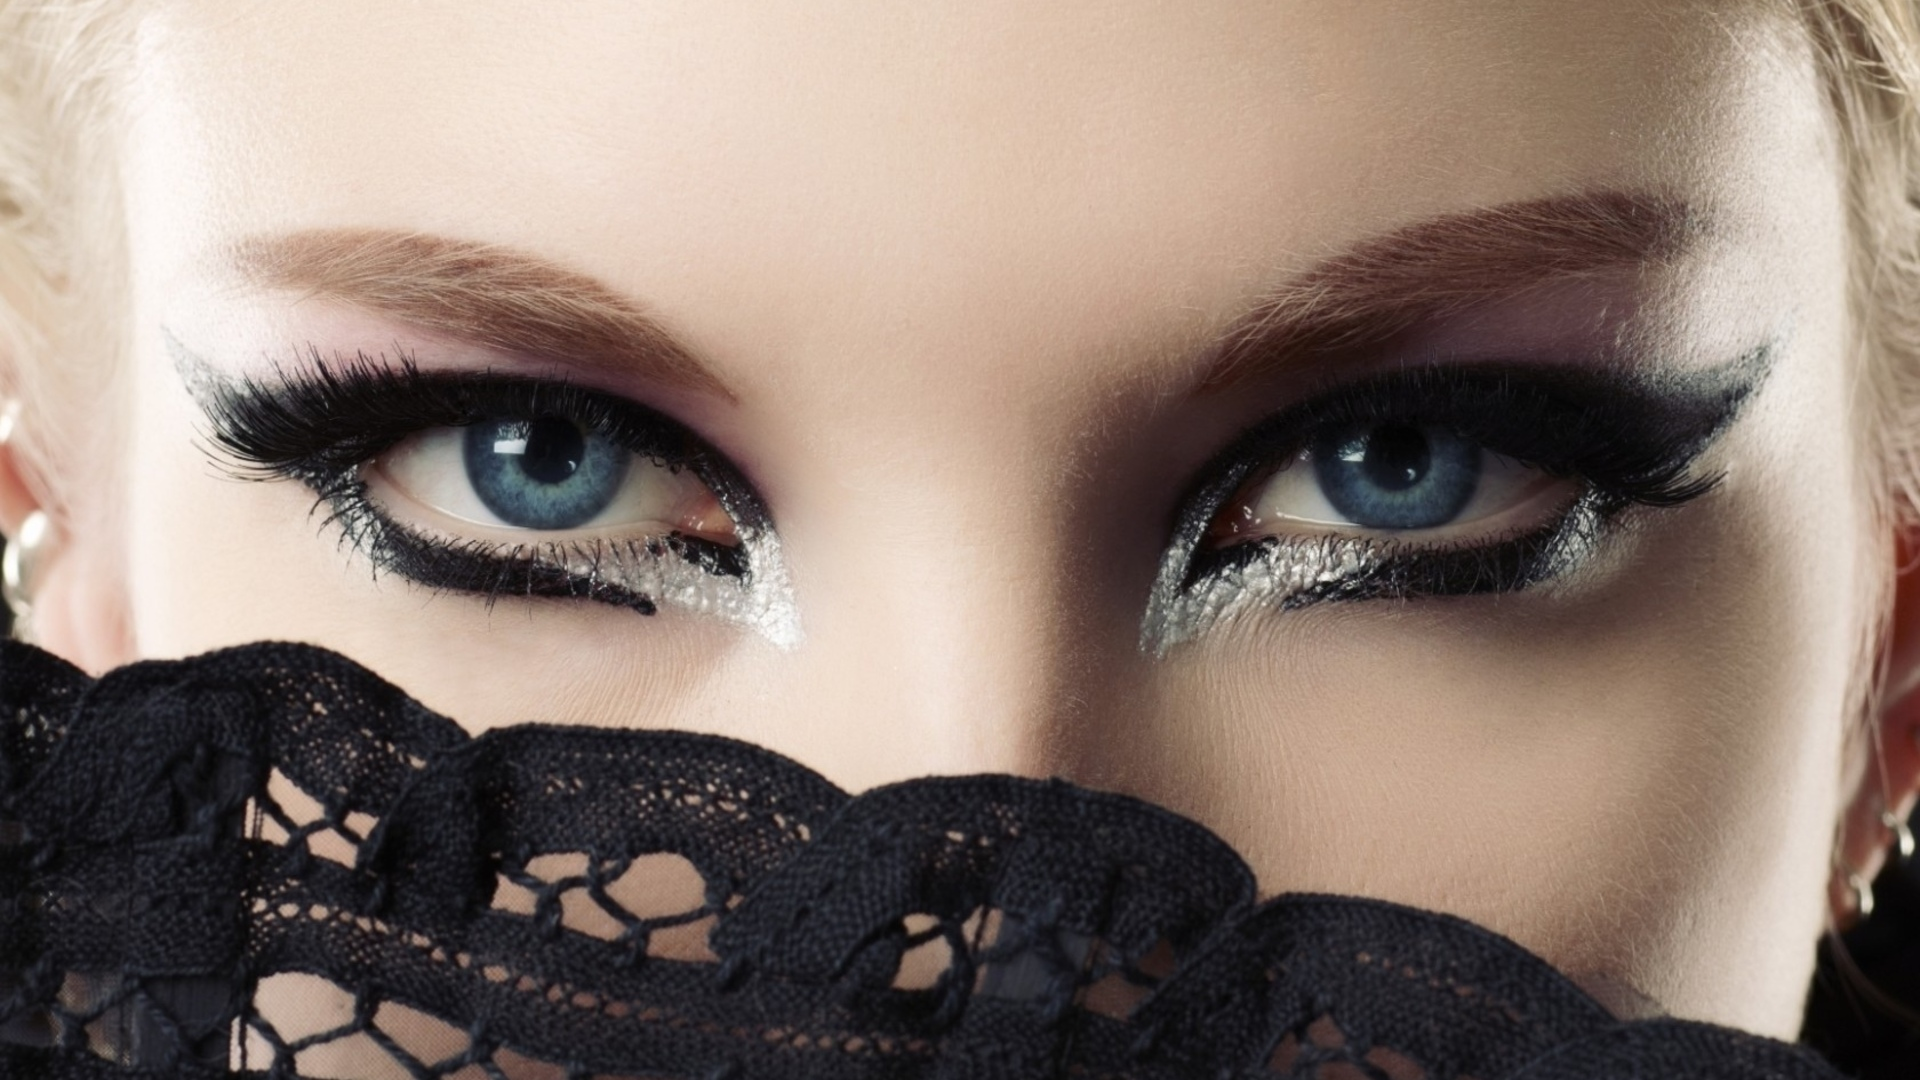 Hd wallpaper eyes - Beautiful Eyes Wallpapers Archives Free Wall Paper Free Hd Mobile